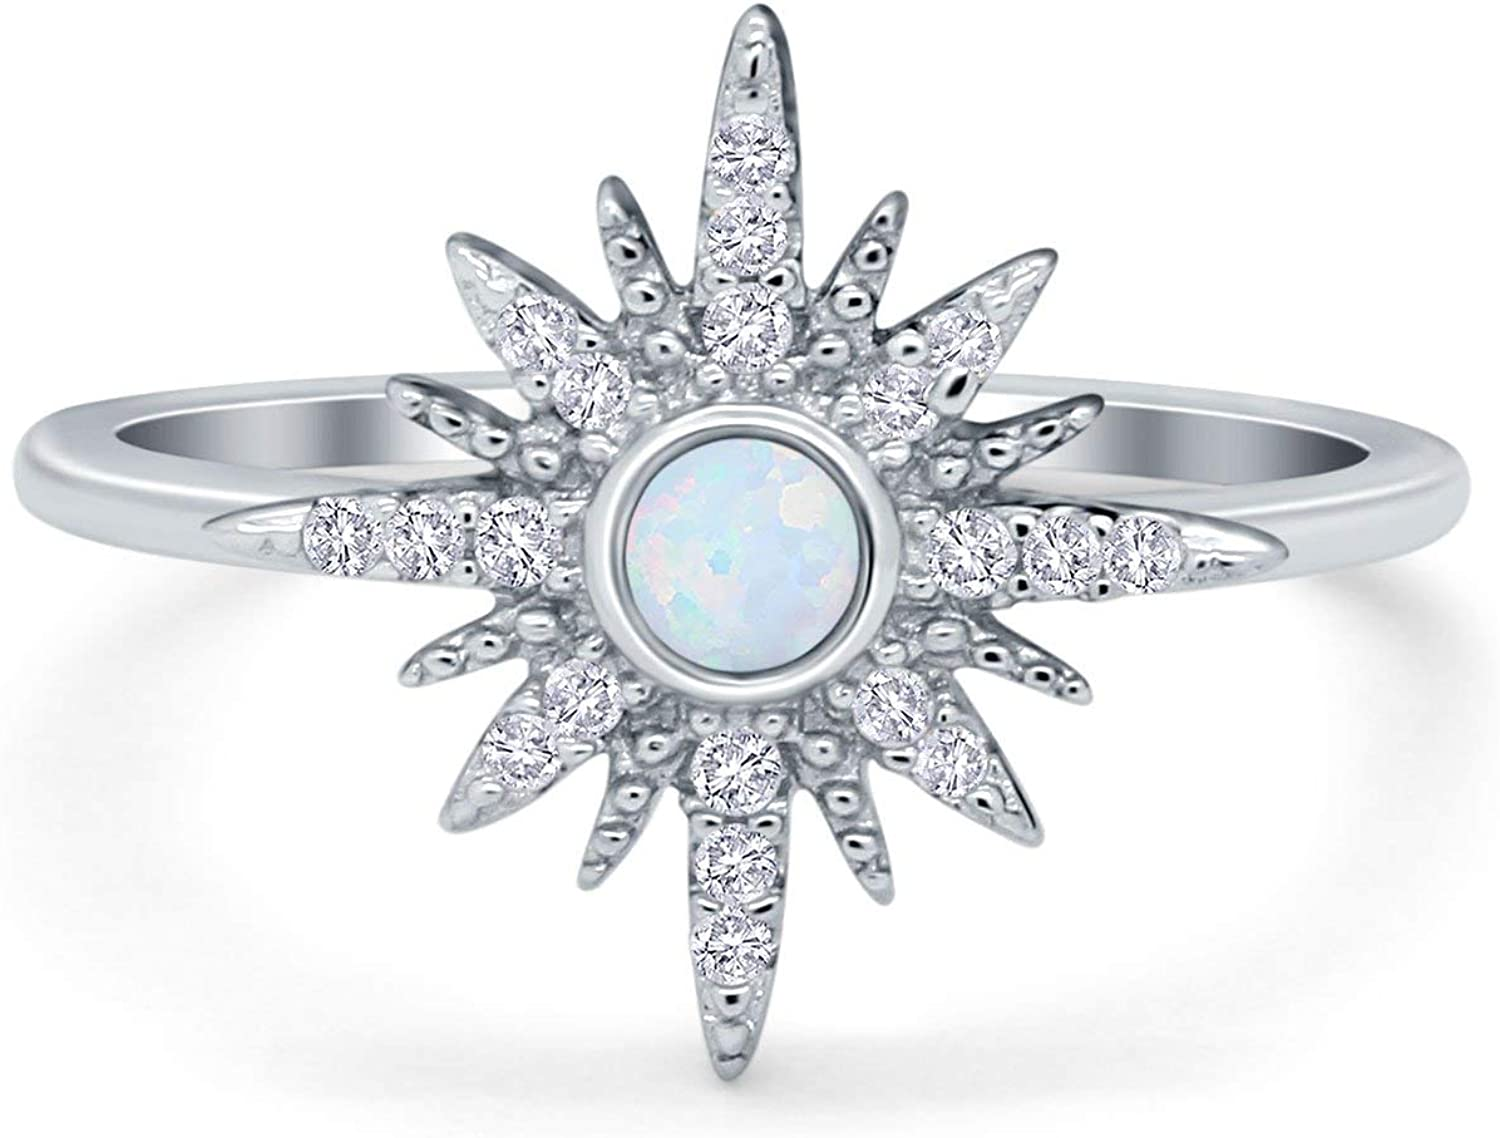 Blue Apple Co. Cluster Fashion Starburst Opal Ring Round Simulated Cubic Zirconia 925 Sterling Silver